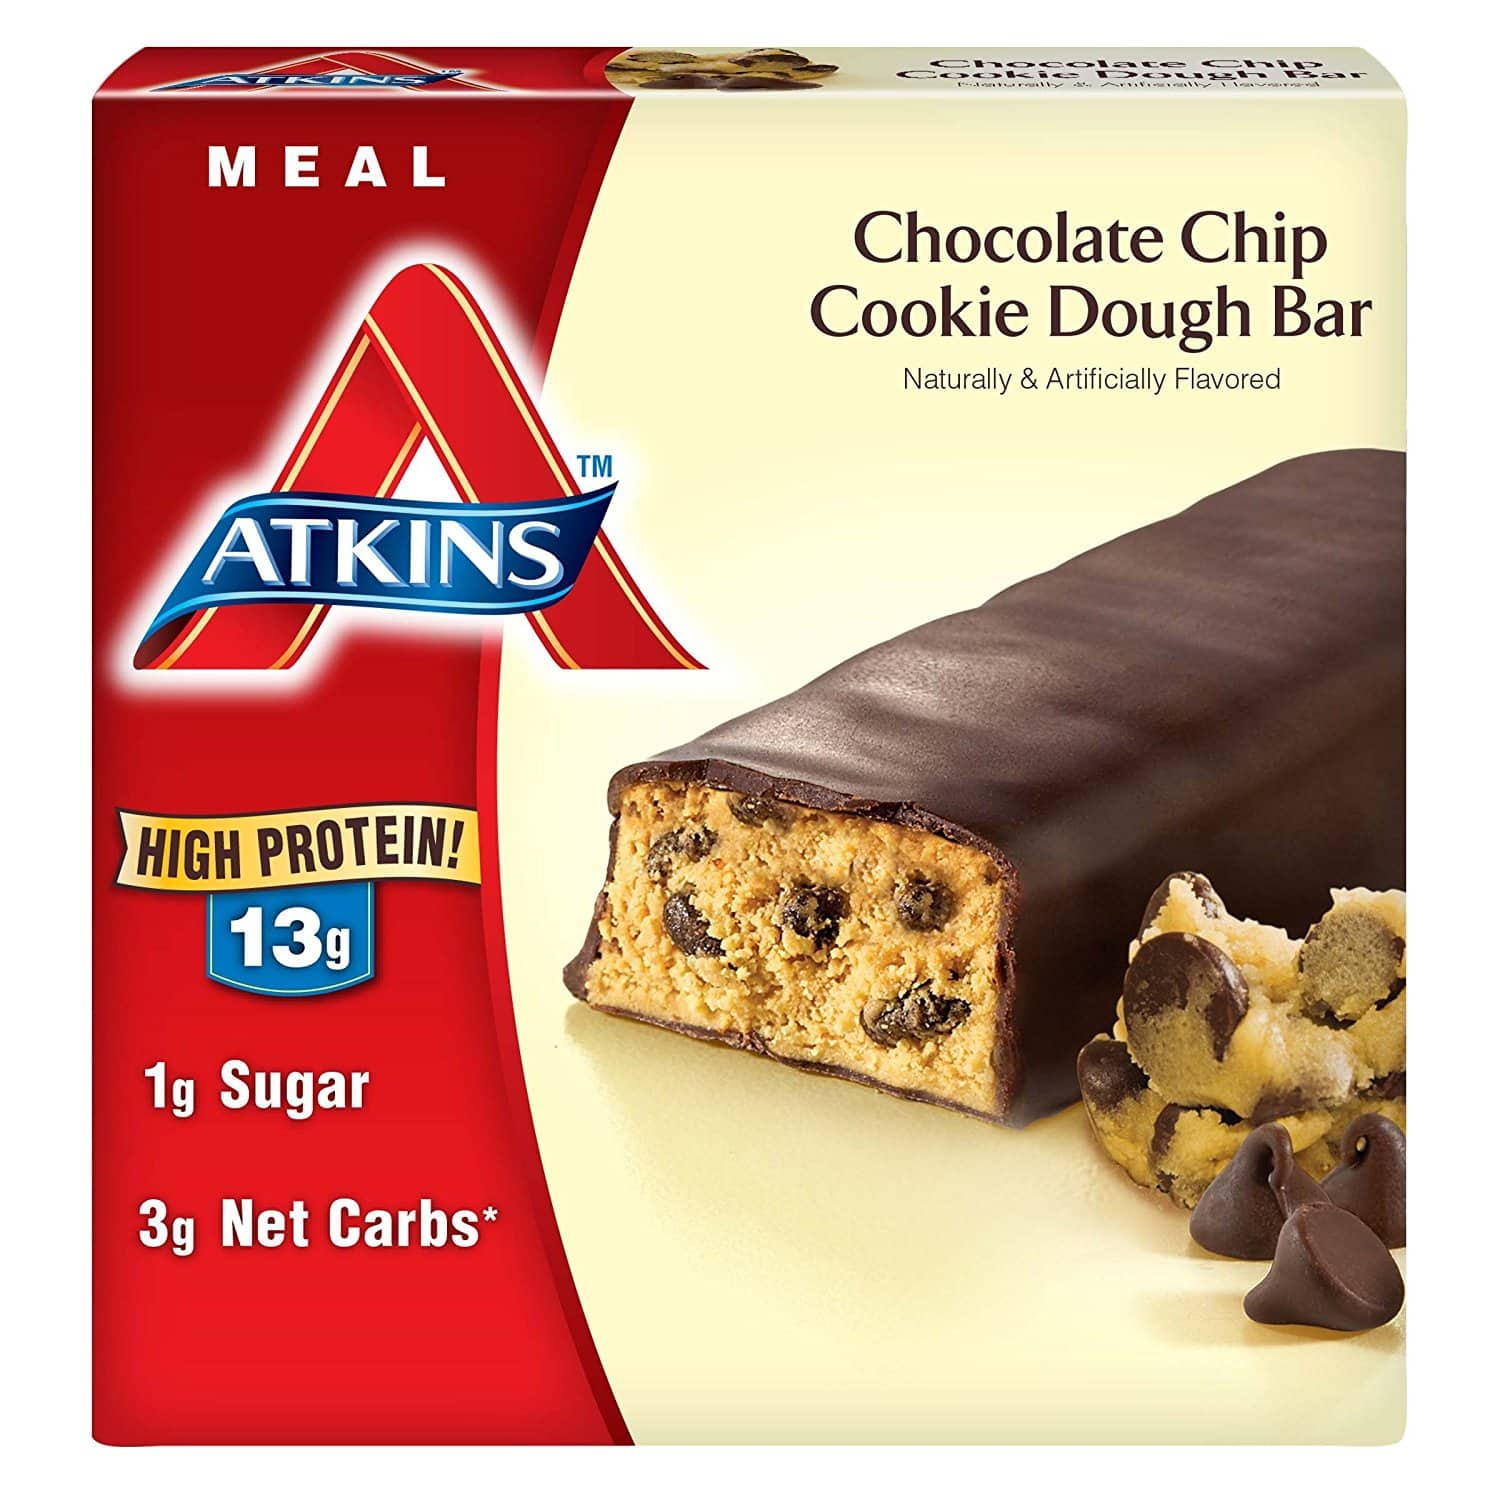 30-Count Atkins Meal Bar (Chocolate Chip Cookie Dough) $30.77 (or less) with 30% coupon + S&S at Amazon